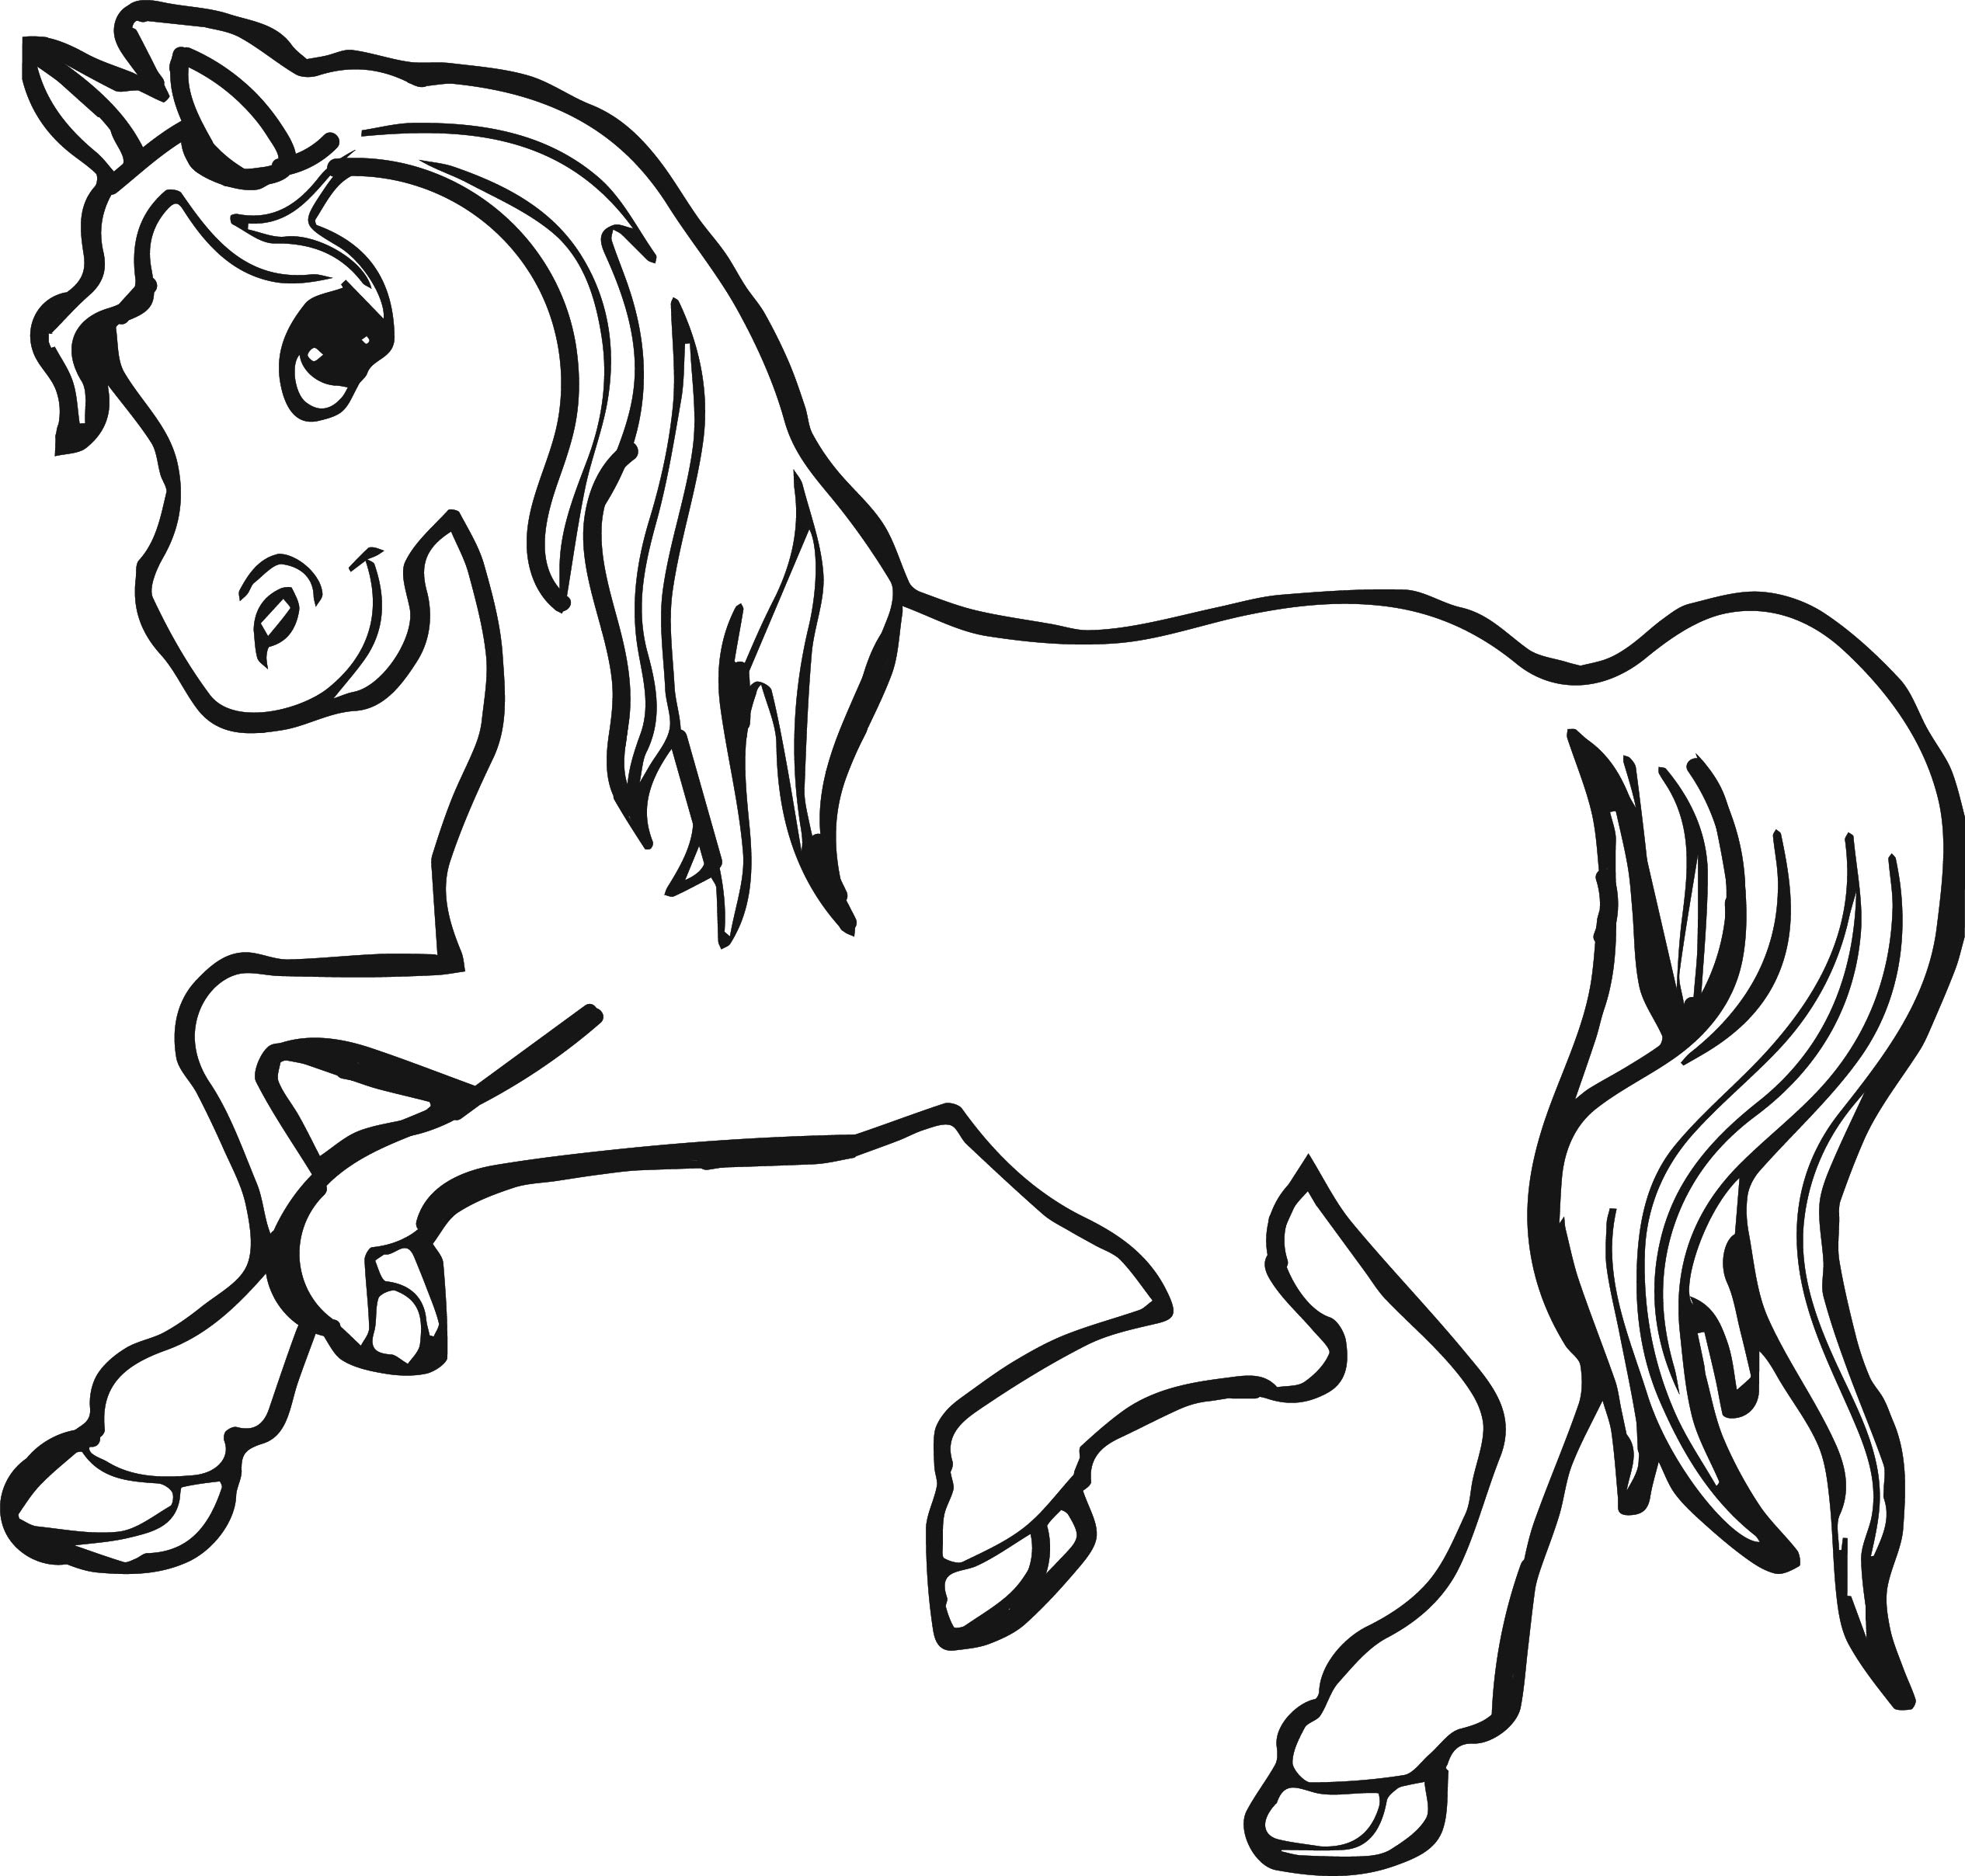 pictures of ponies to color free printable my little pony coloring pages for kids ponies to color pictures of